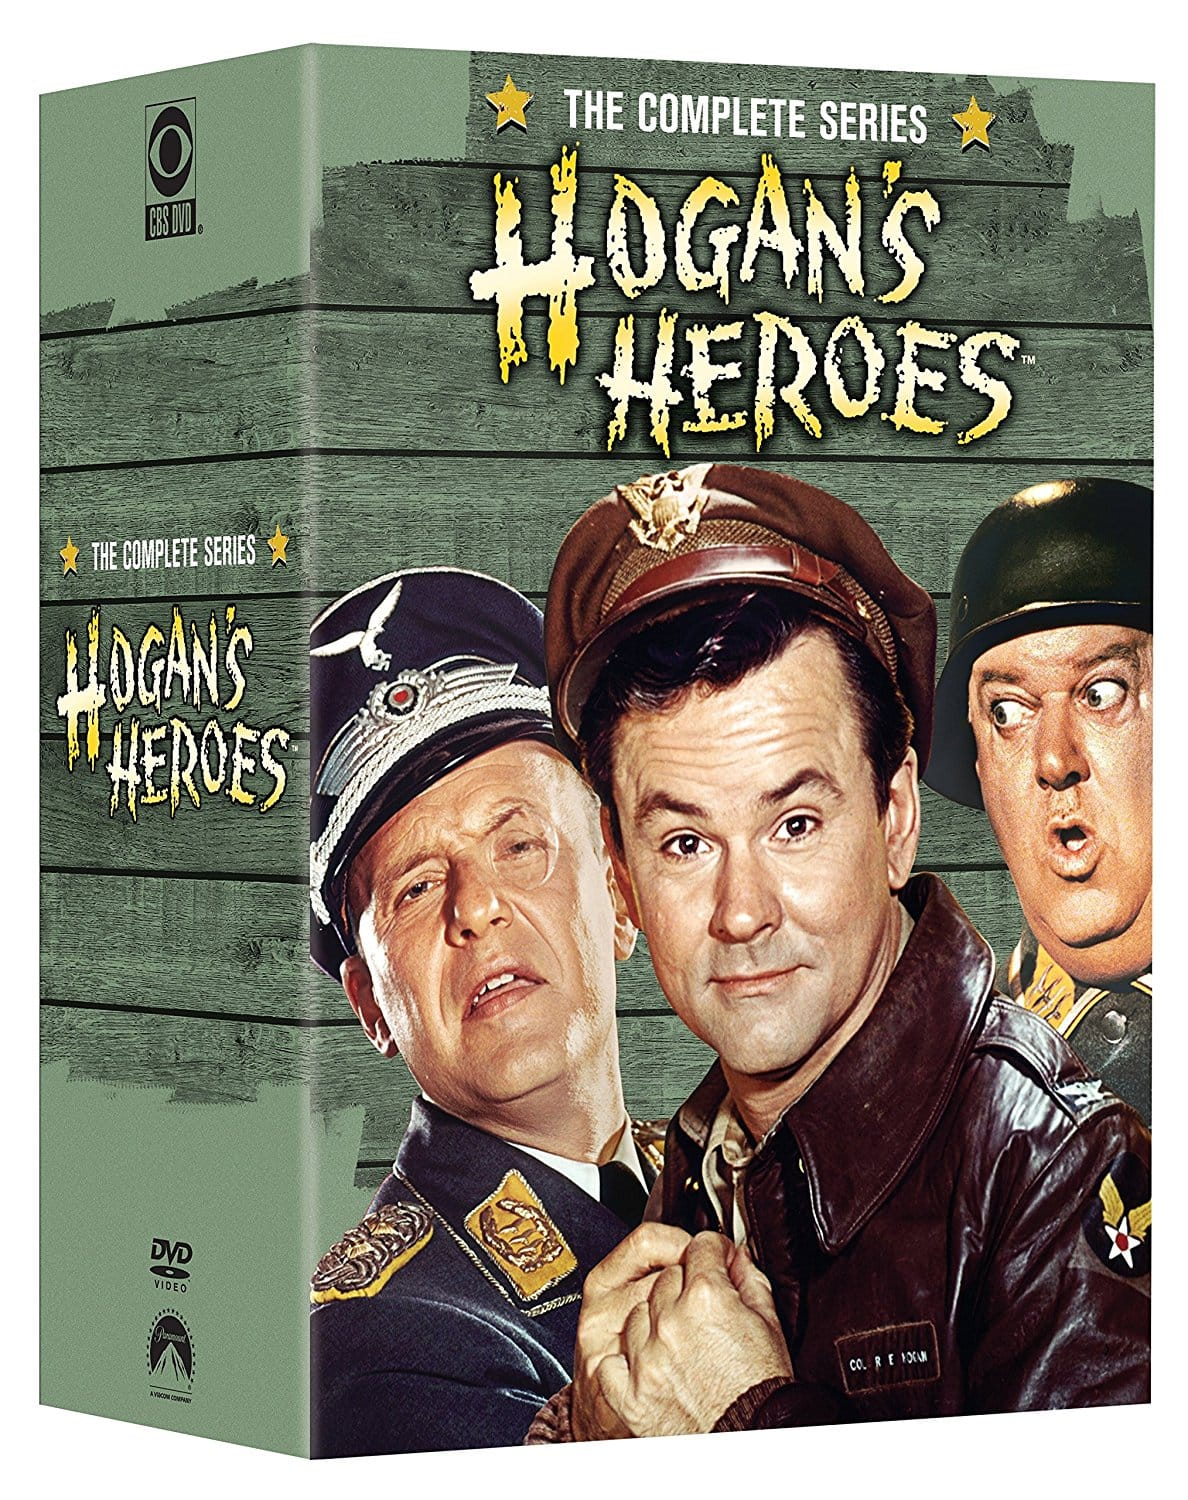 Hogan's Heroes: The Complete Series $32 @Amazon